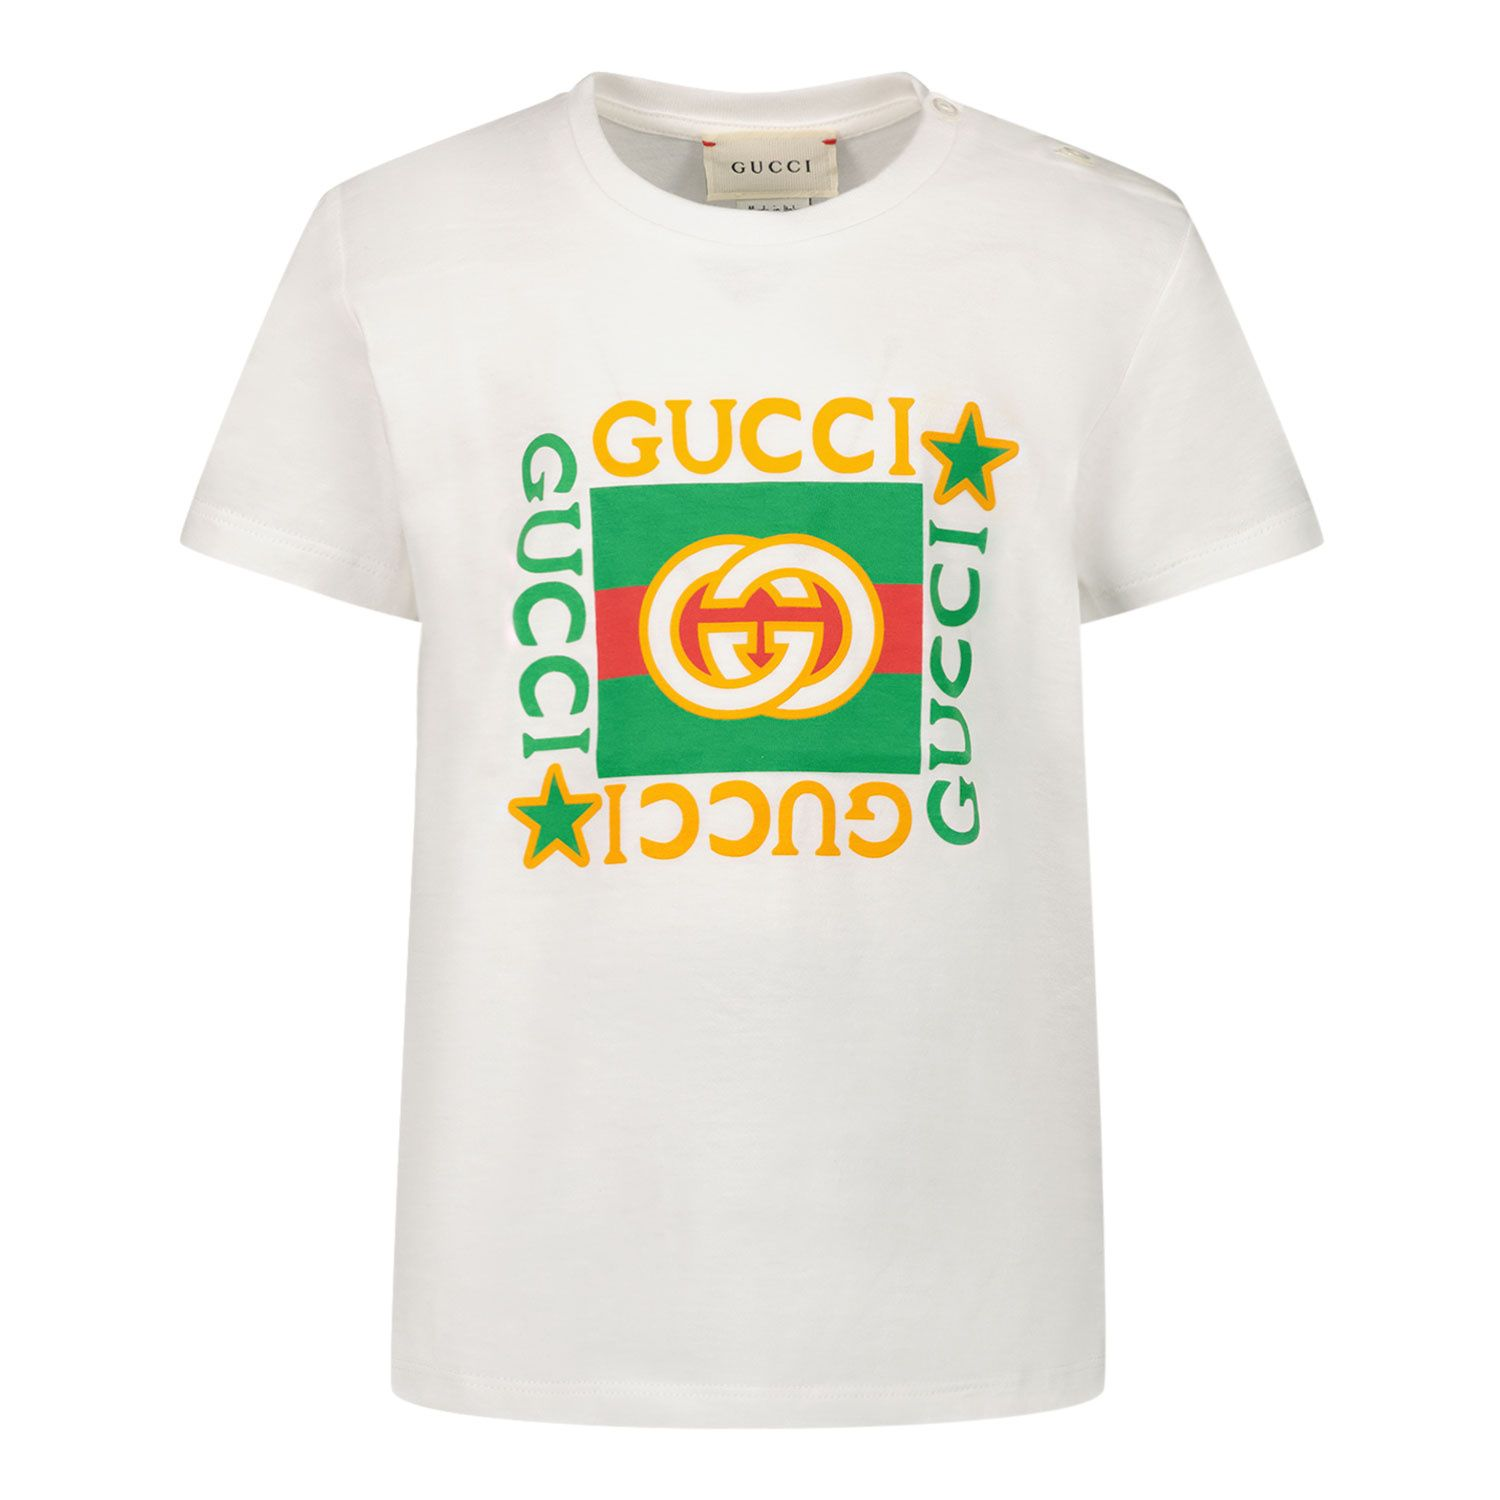 Picture of Gucci 548034 XJCPU baby shirt white